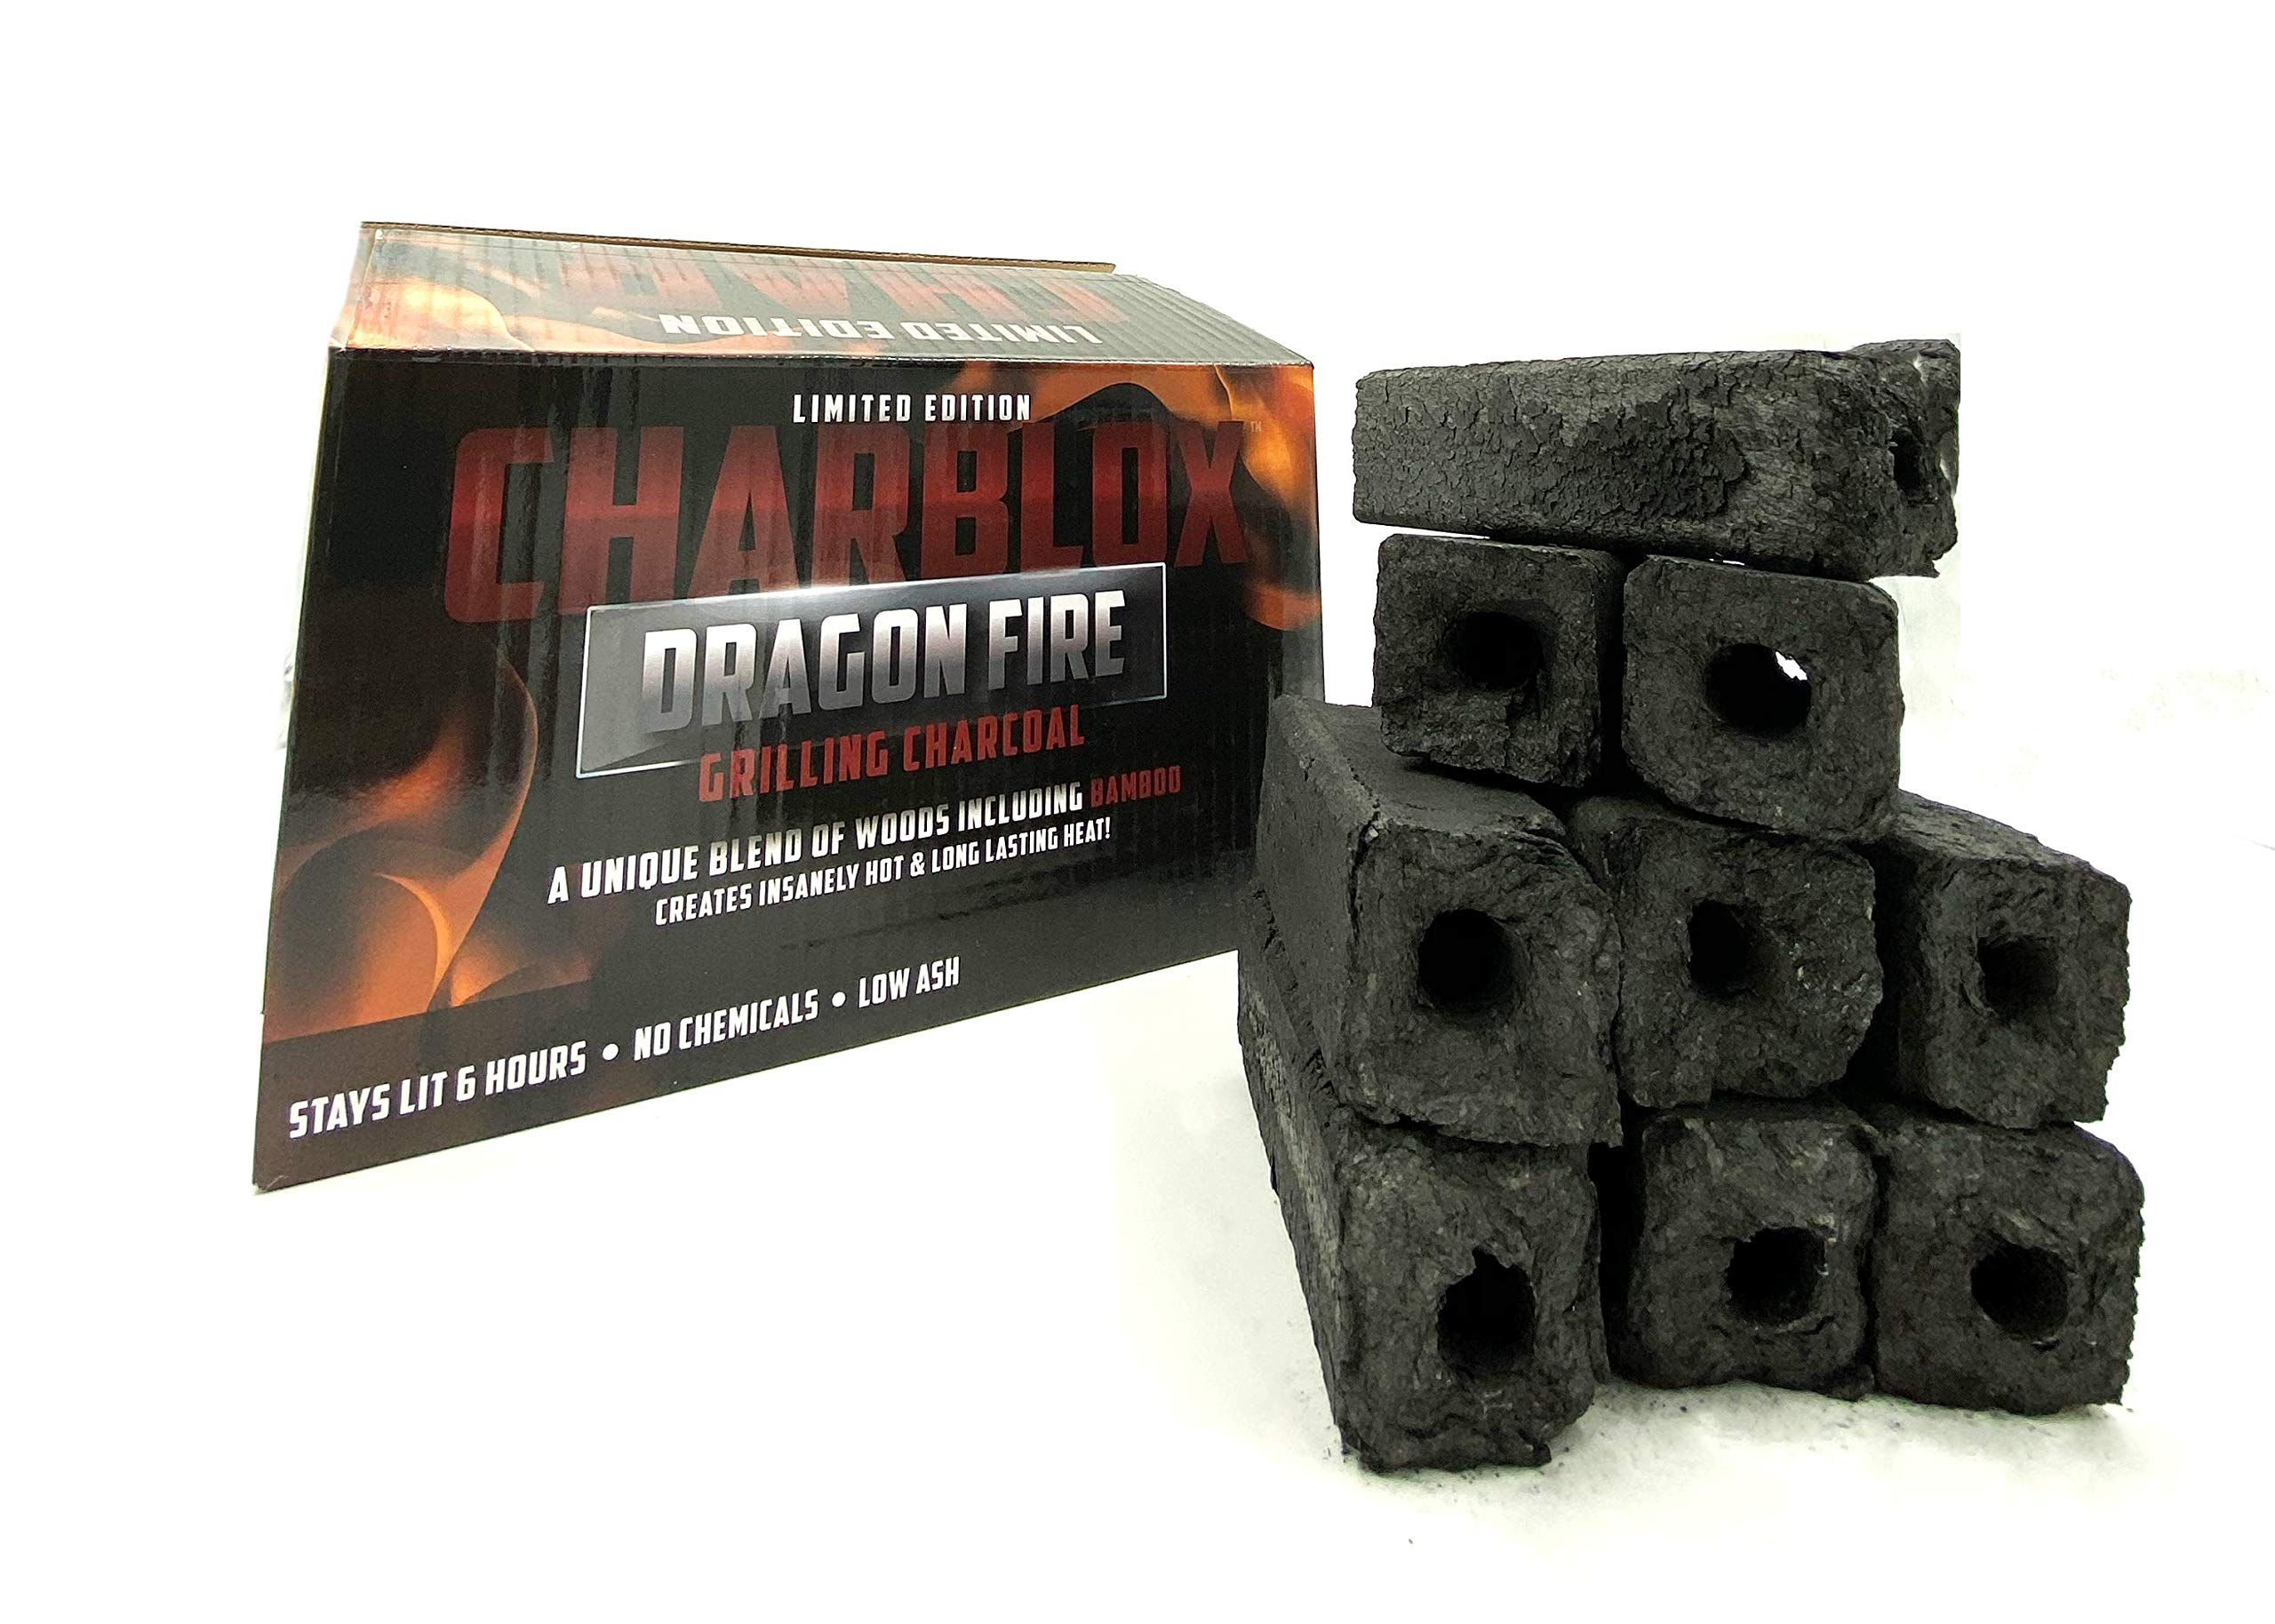 CHARBLOX Dragon Fire Grilling Charcoal - Made with Super Strong Bamboo - Ultra Hot, Stays Lit 6 Hours, Limited Edition by CHARBLOX